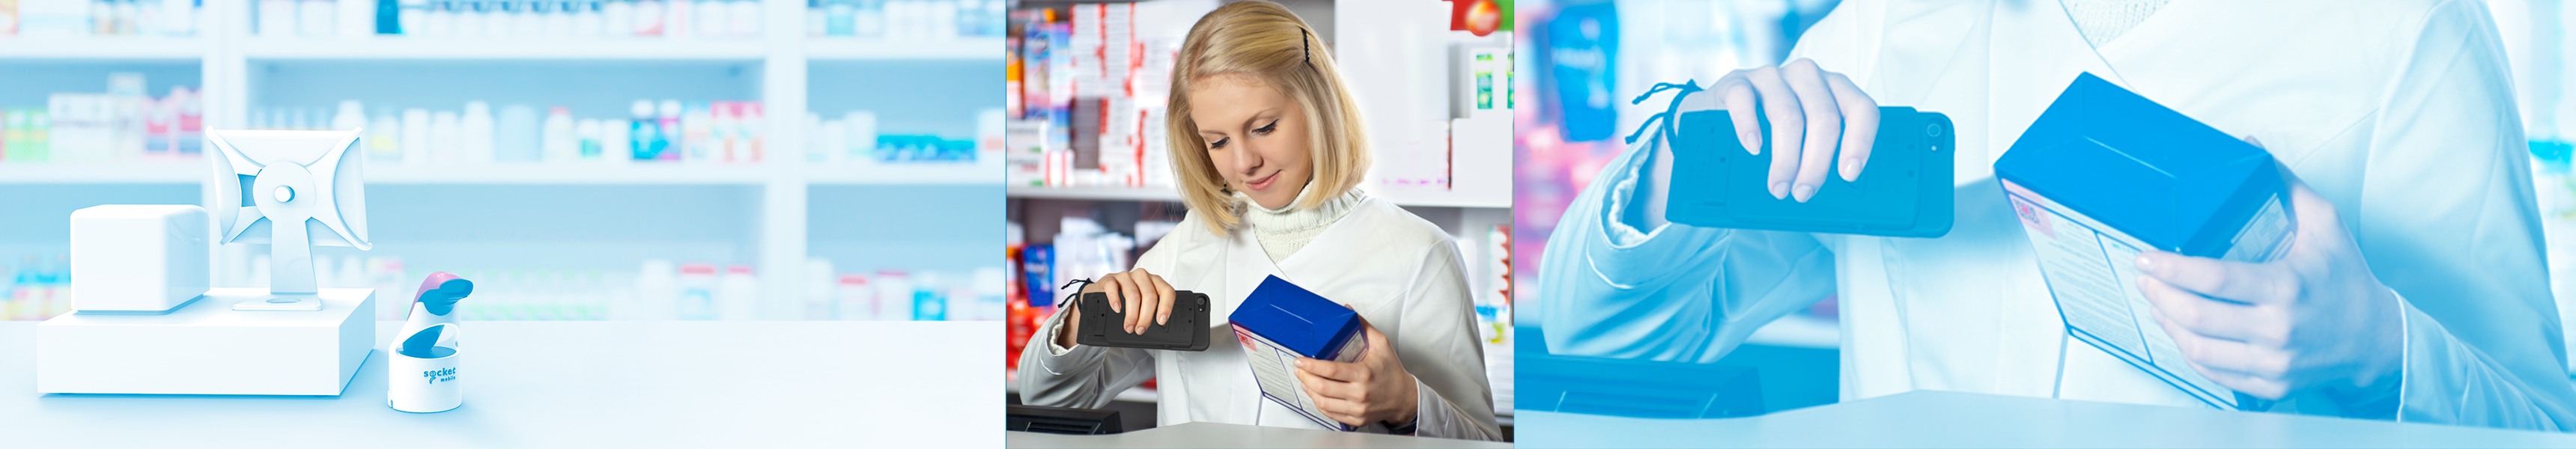 Barcode scanning in pharmacy